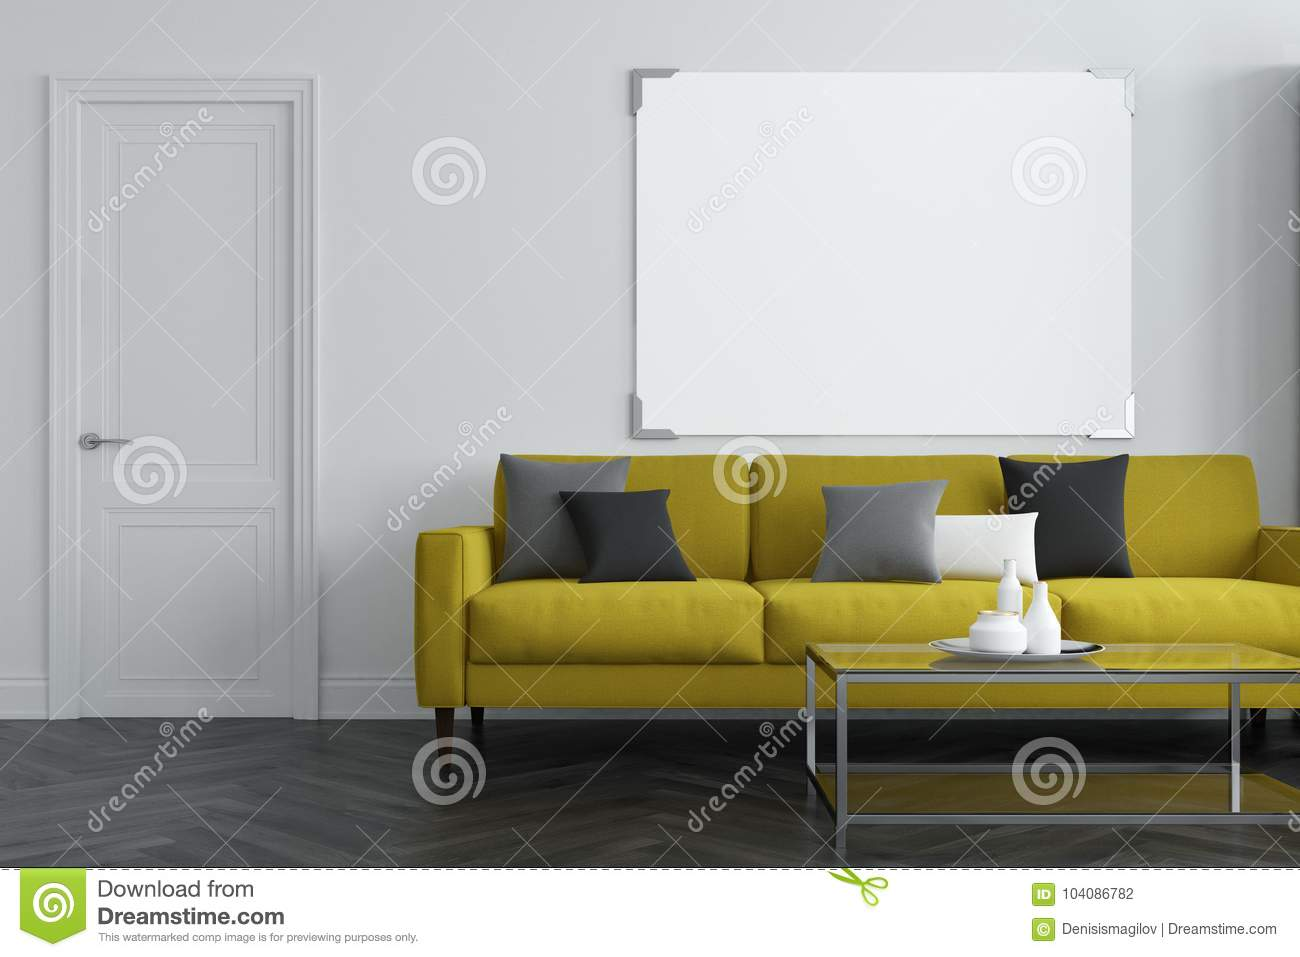 White living room interior with a concrete floor a long green sofa with colored cushions on it and a coffee table a horizontal poster 3d rendering mock